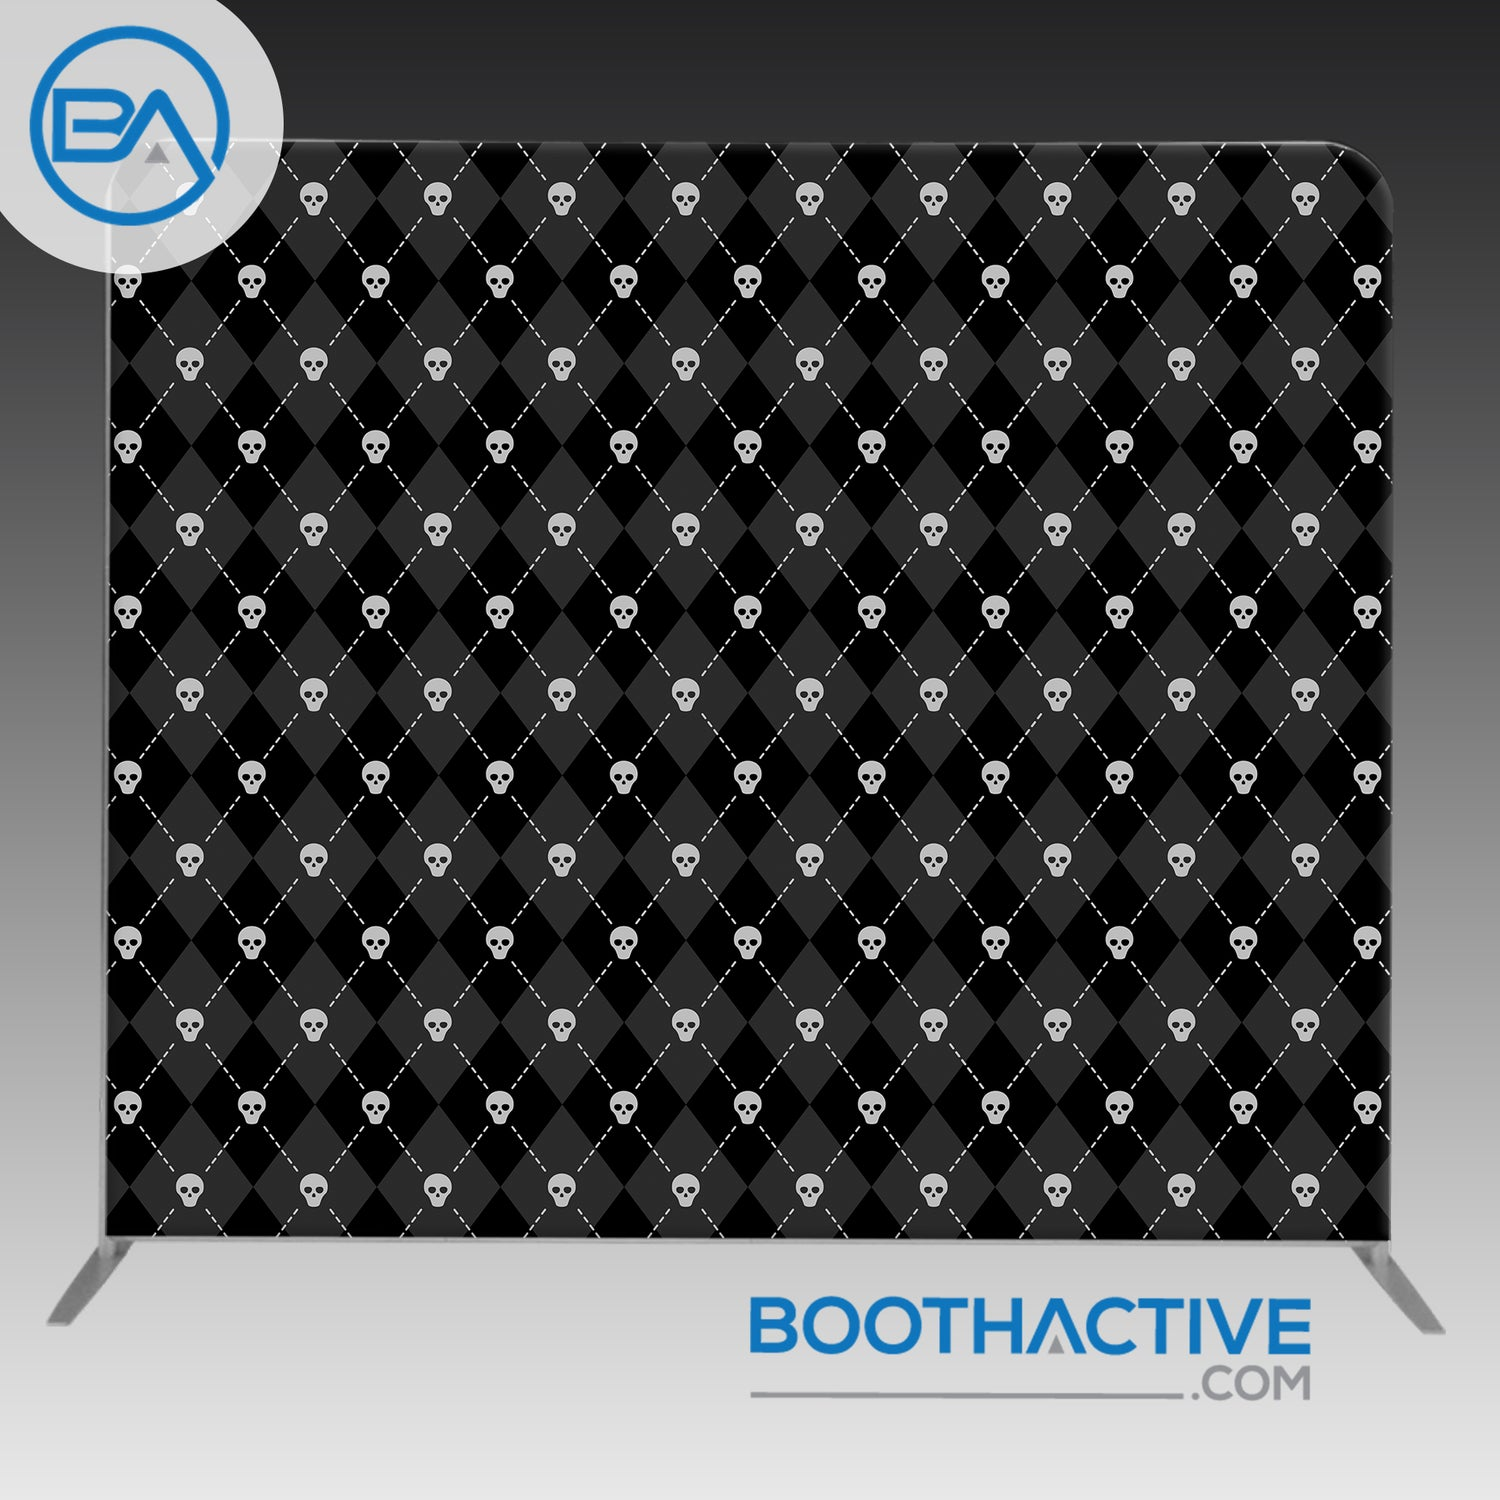 8' x 8' Backdrop - Halloween 4 - BoothActive